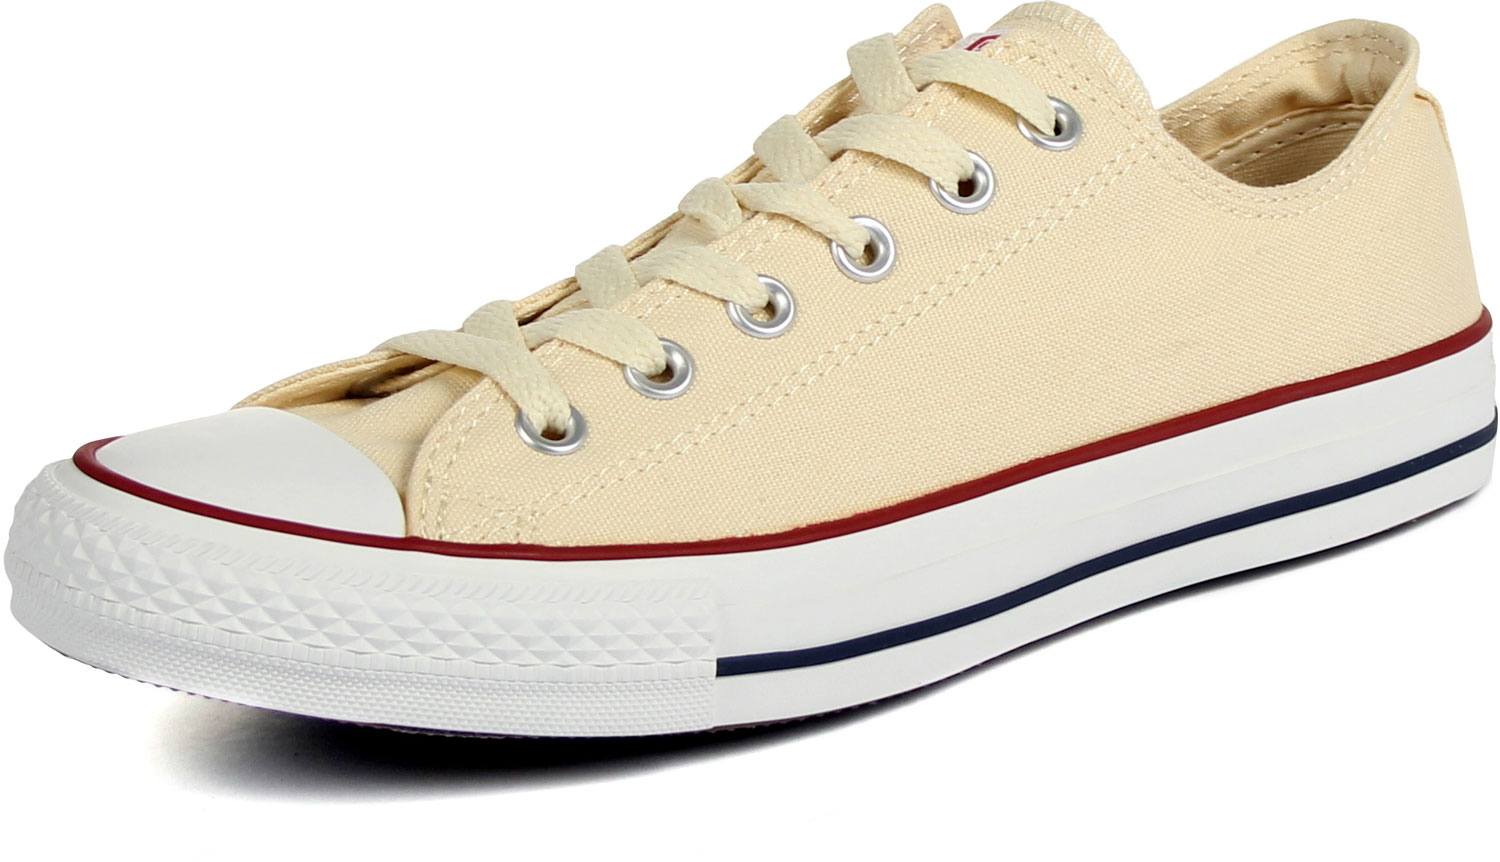 9a5ed7b3c3c Converse Chuck Taylor All Star Shoes Low top in White